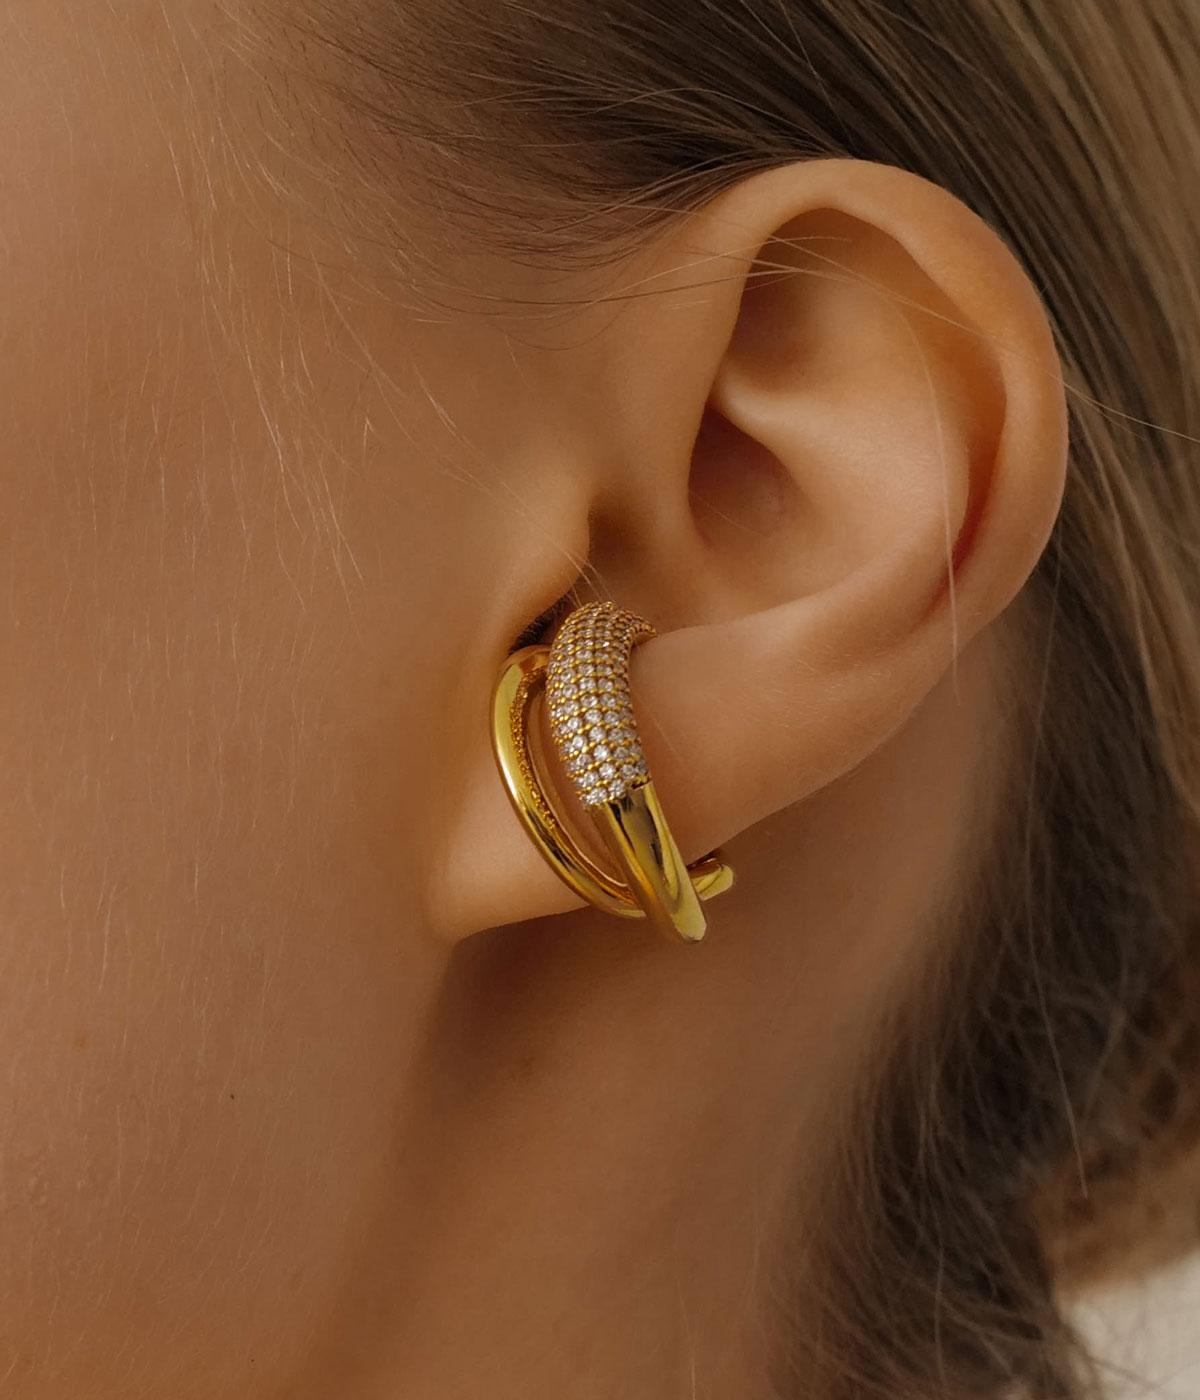 Womans ear wearing a gold and damond hoop